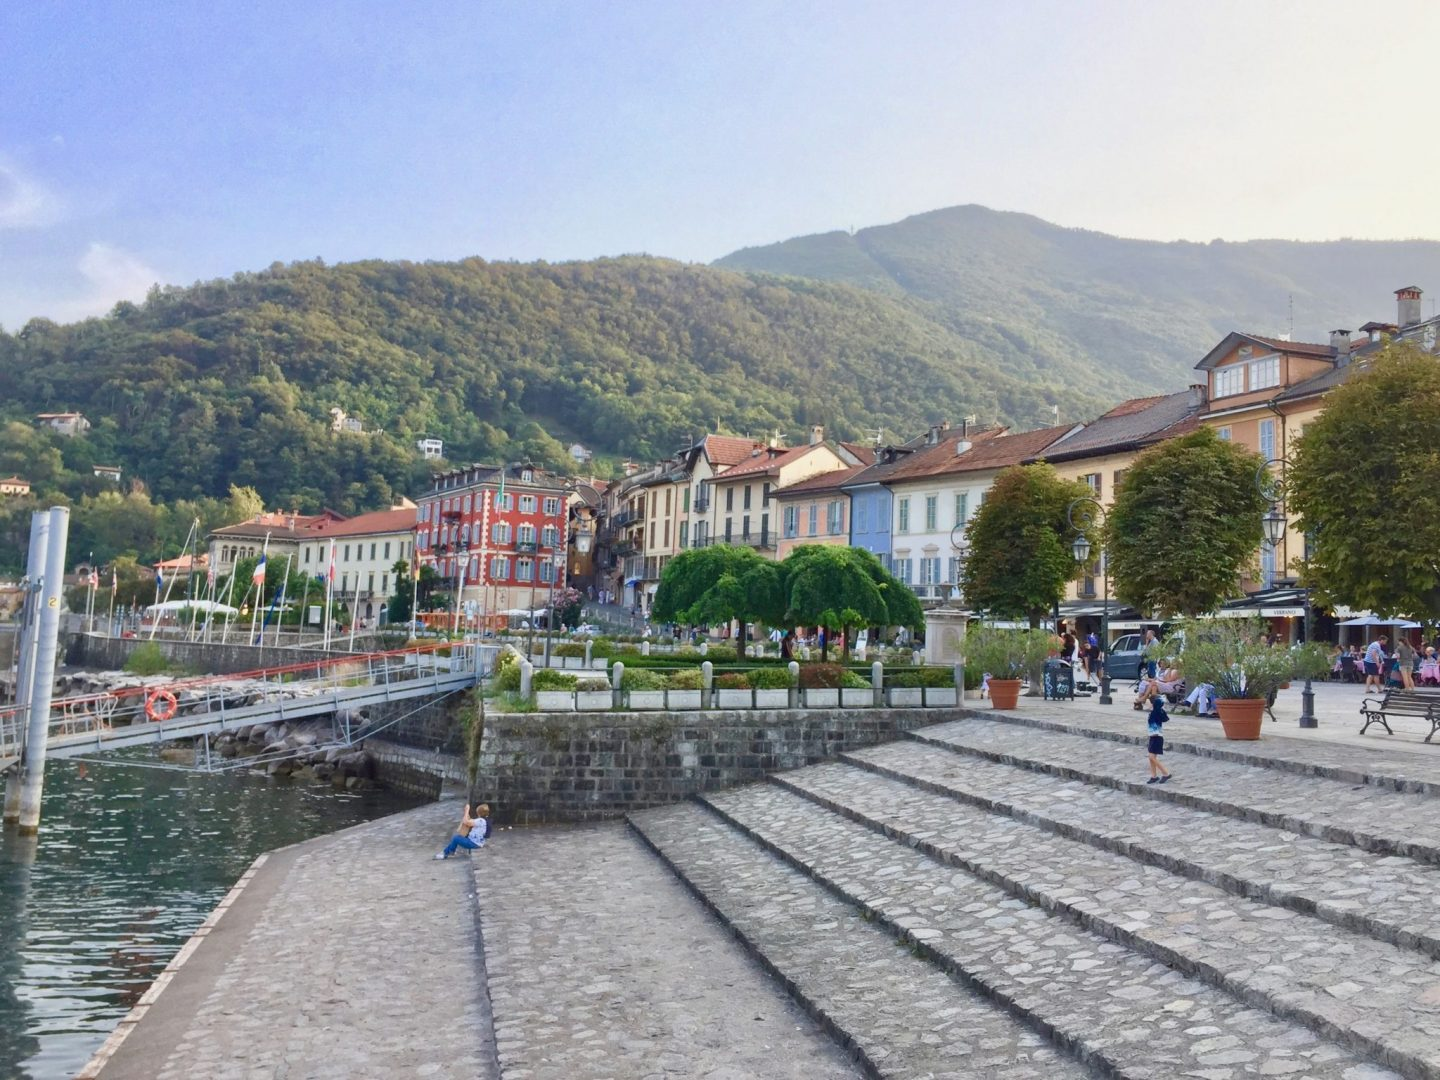 Cannobio watersports, beach and prom - things to do in Lake Maggiore with kids